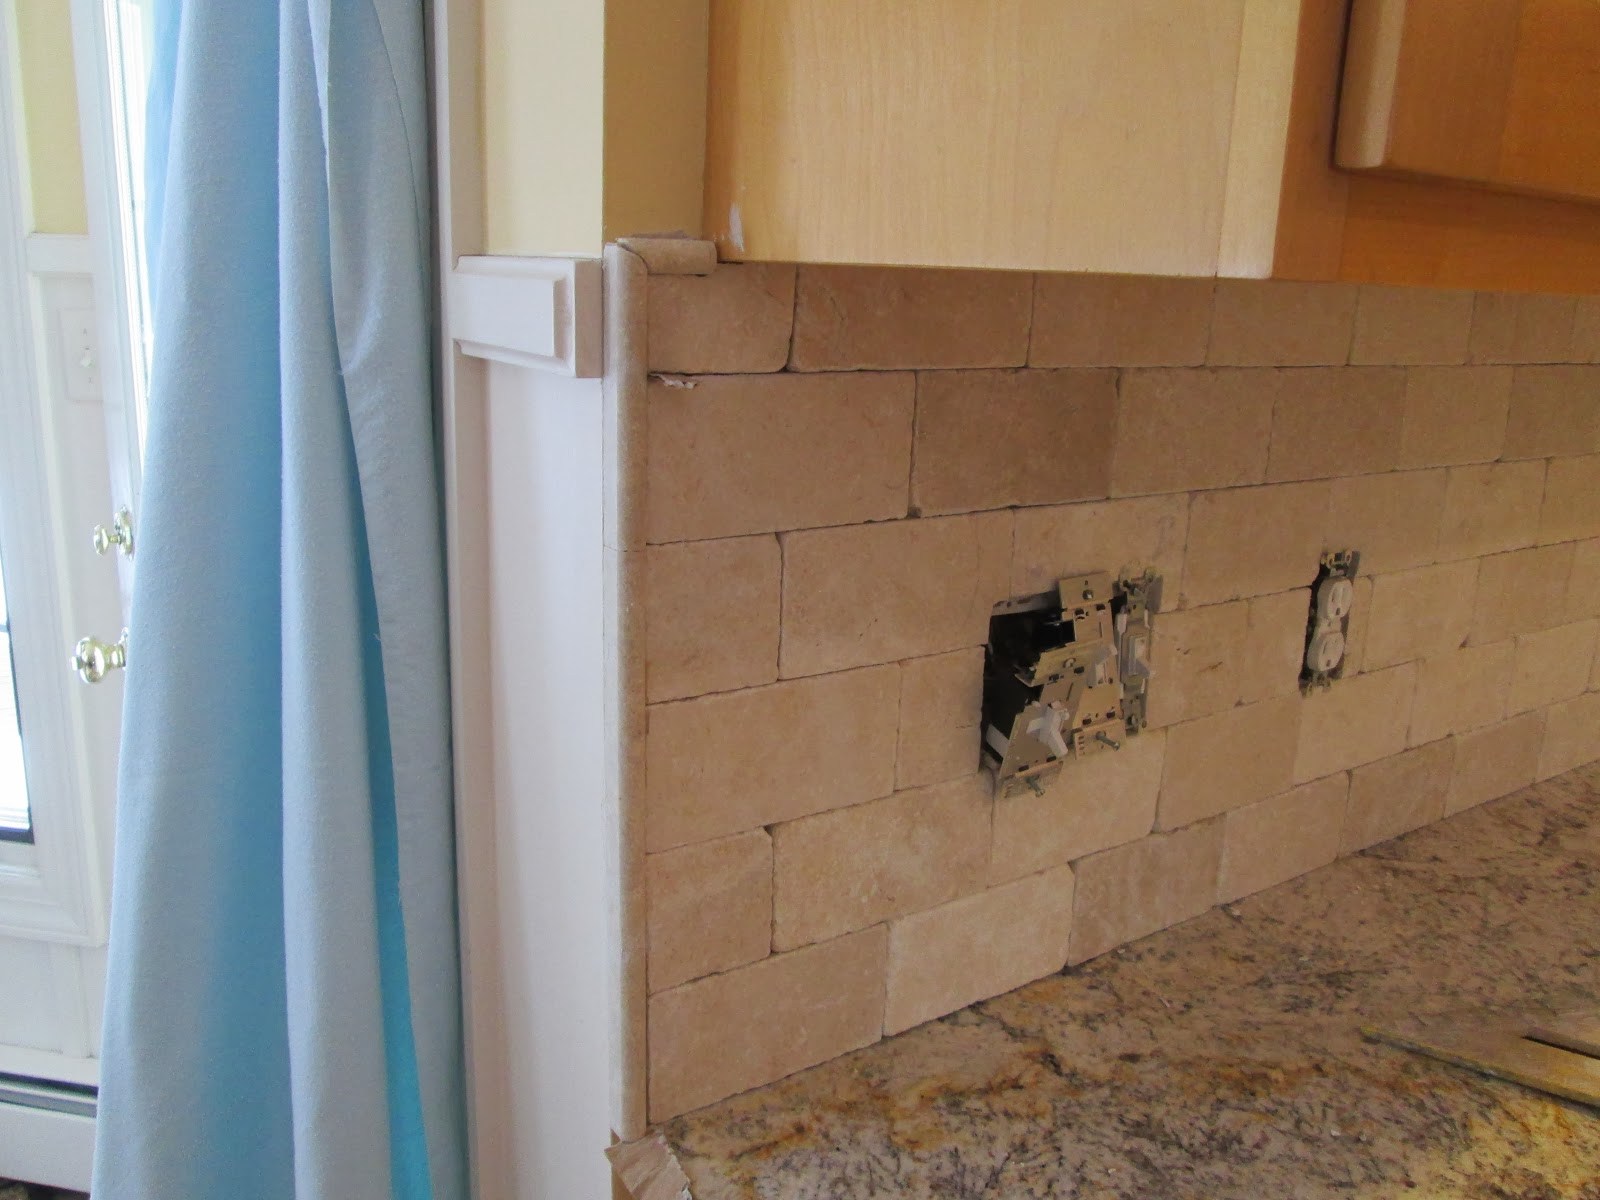 Tumbled marble backsplash completed today total labor cost 310 tumbled marble backsplash completed today total labor cost 310 ask tile excellence dailygadgetfo Gallery